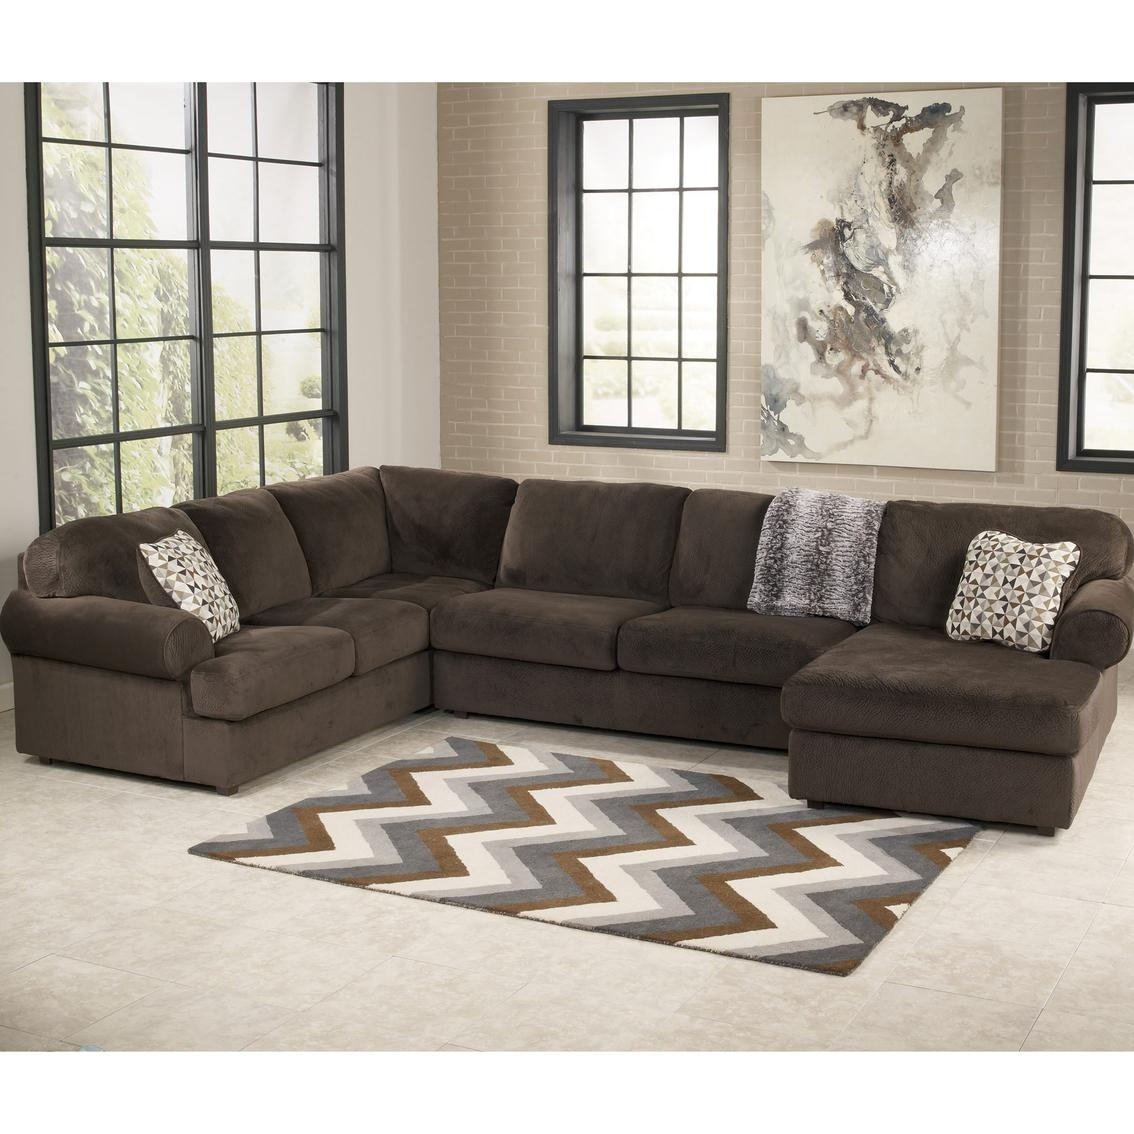 Signature Designashley Jessa Place 3 Pc (Image 16 of 20)